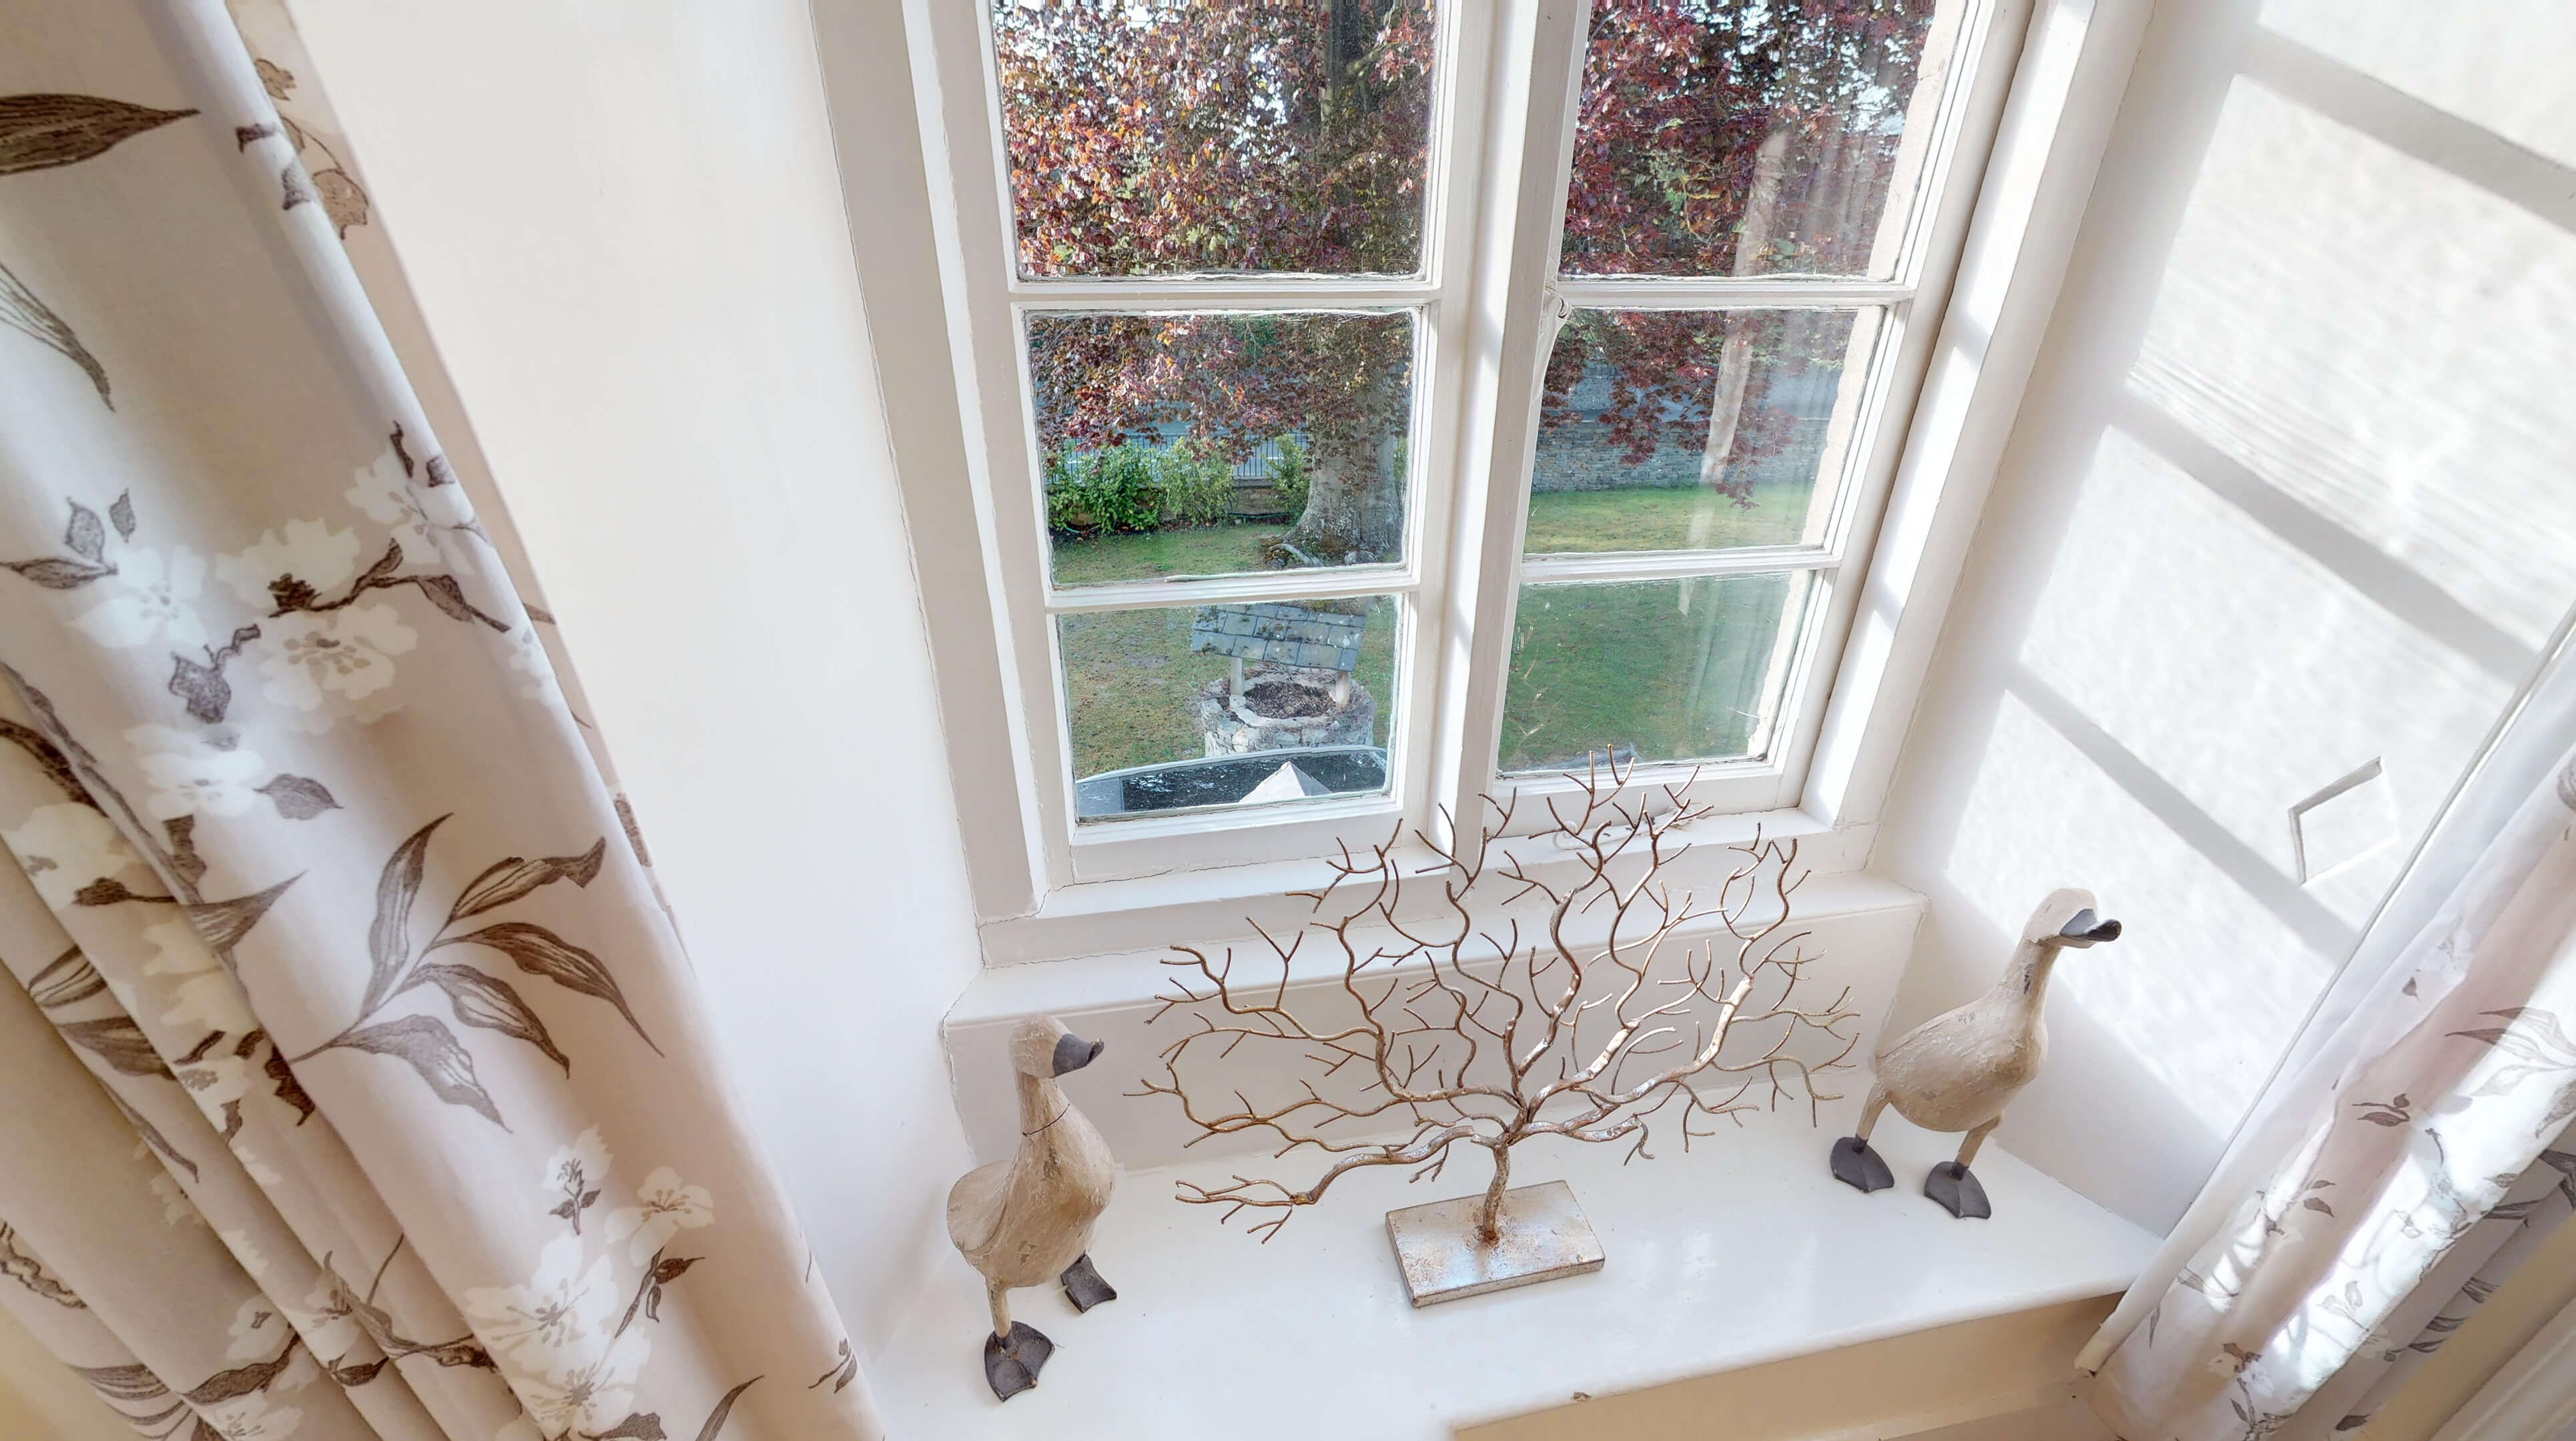 Bladon Two Bedroom Home Farm Cottage Front Window View